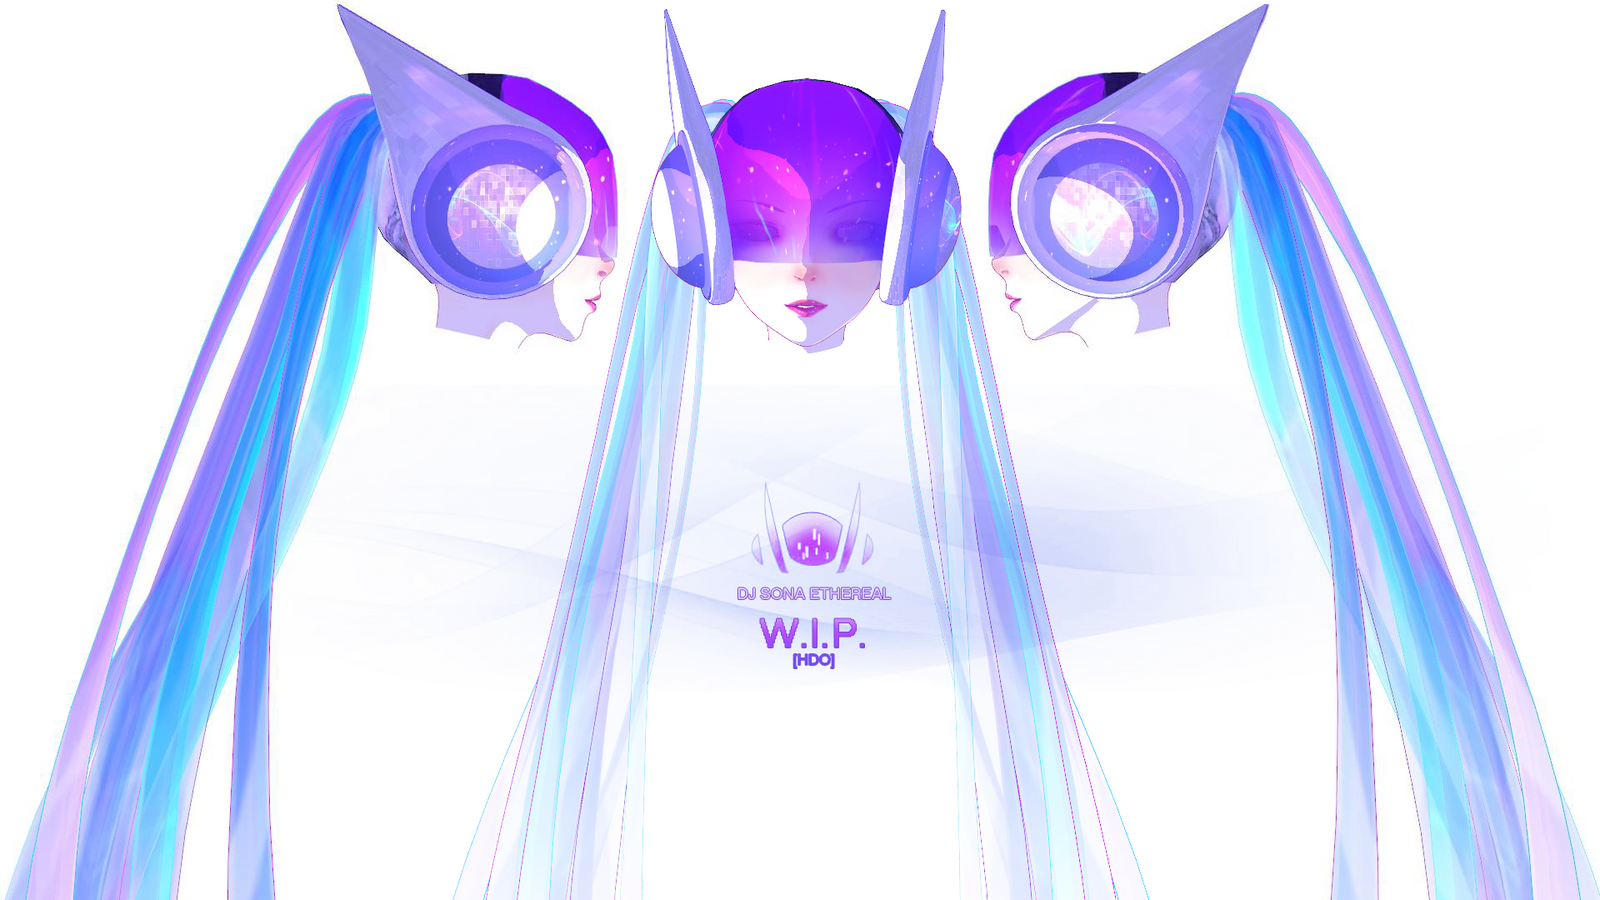 DJ Sona [ETHEREAL form] W.I.P. by Hidaomori on DeviantArt